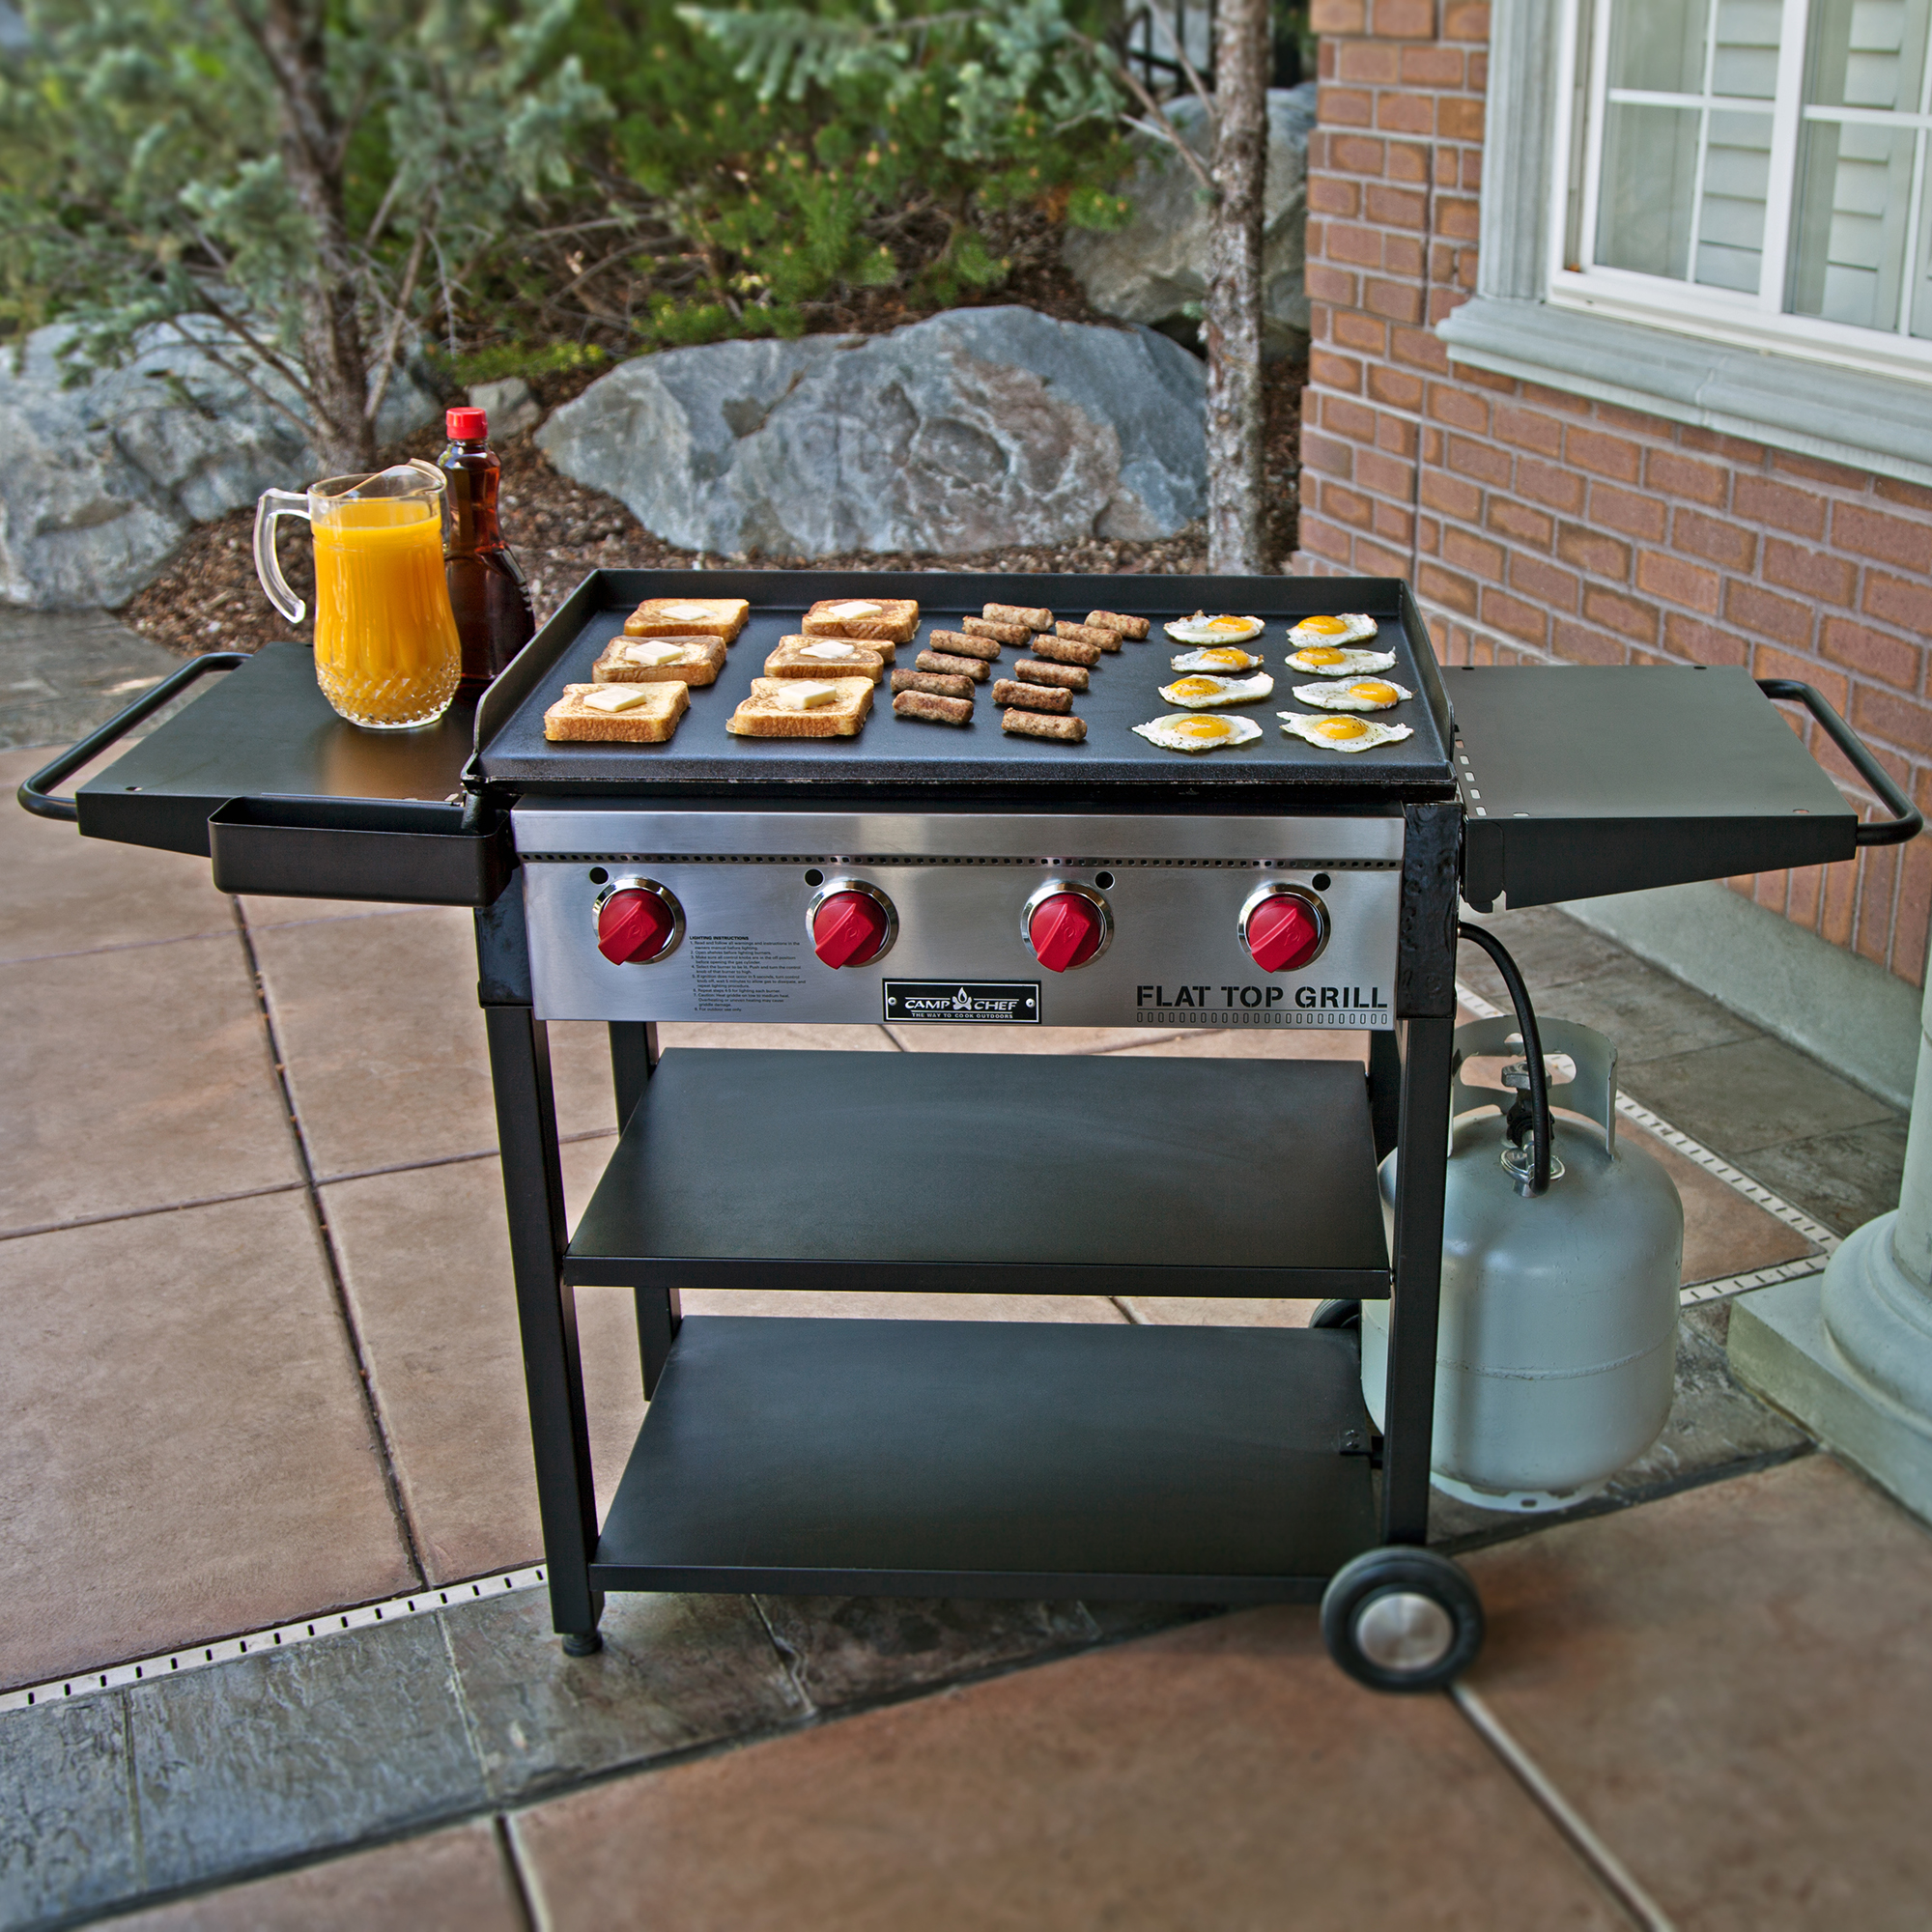 Camp Chef 600 Square Inch Outdoor Propane Gas Flat Top